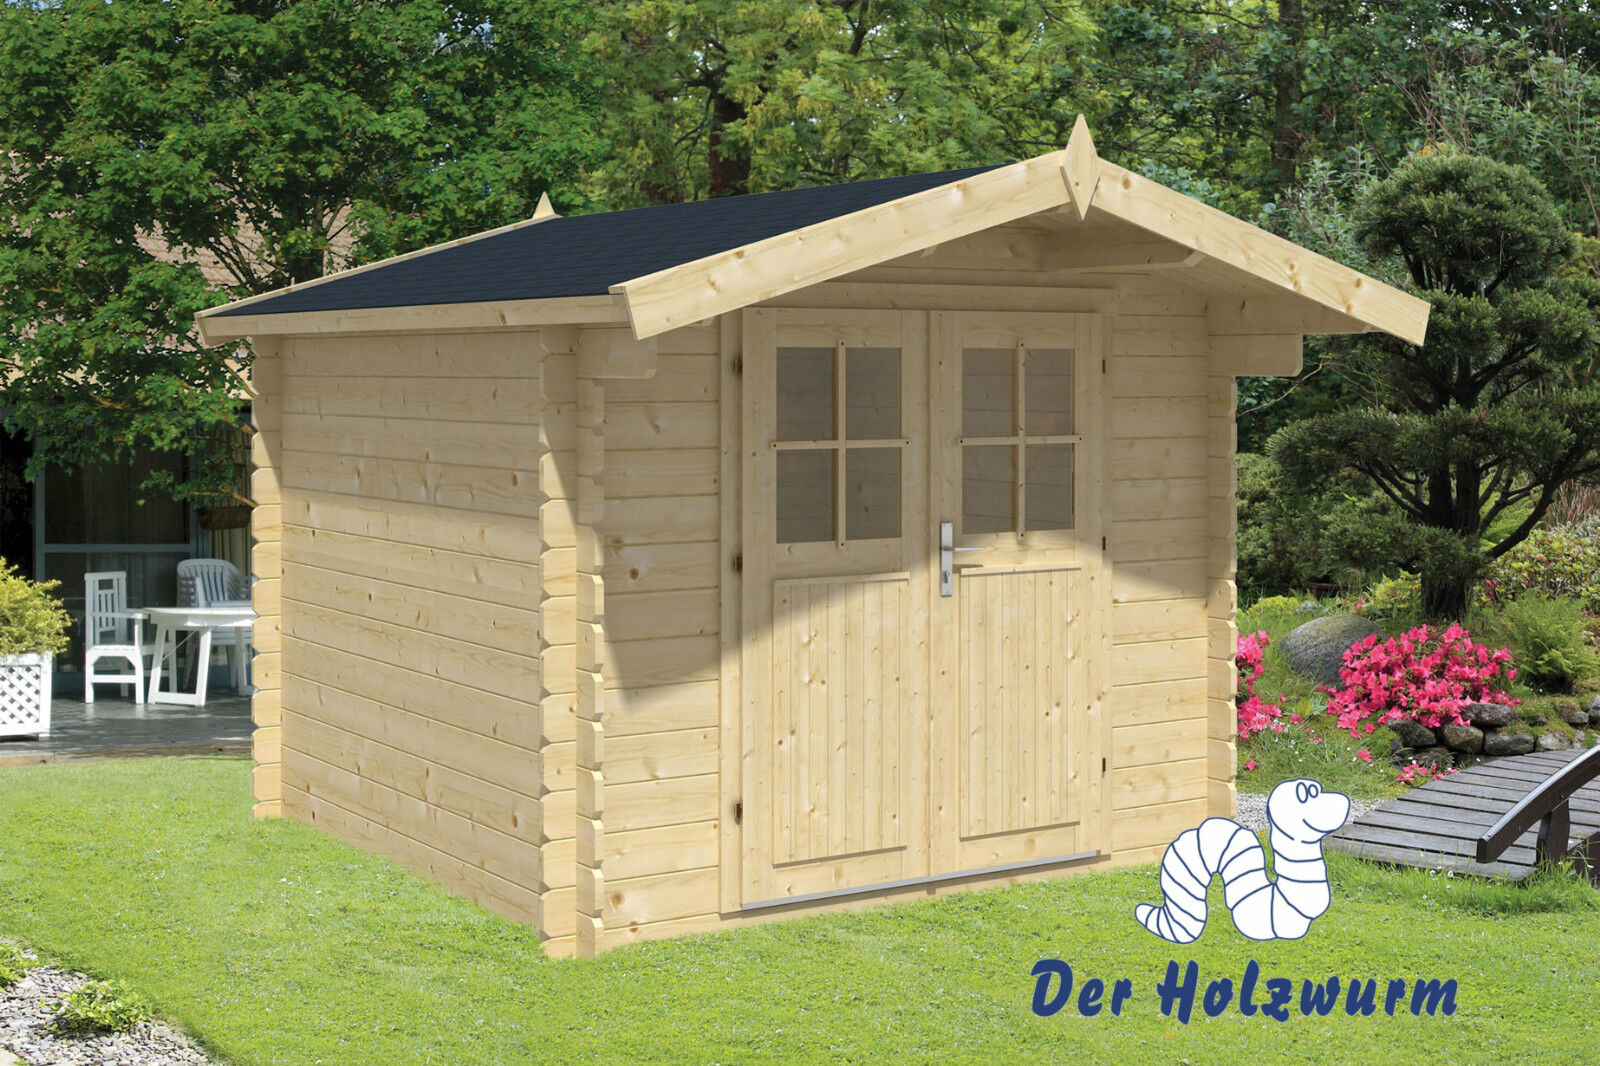 gartenhaus gitte blockhaus 260x260 cm ger tehaus holzhaus 28 mm holz schuppen ebay. Black Bedroom Furniture Sets. Home Design Ideas